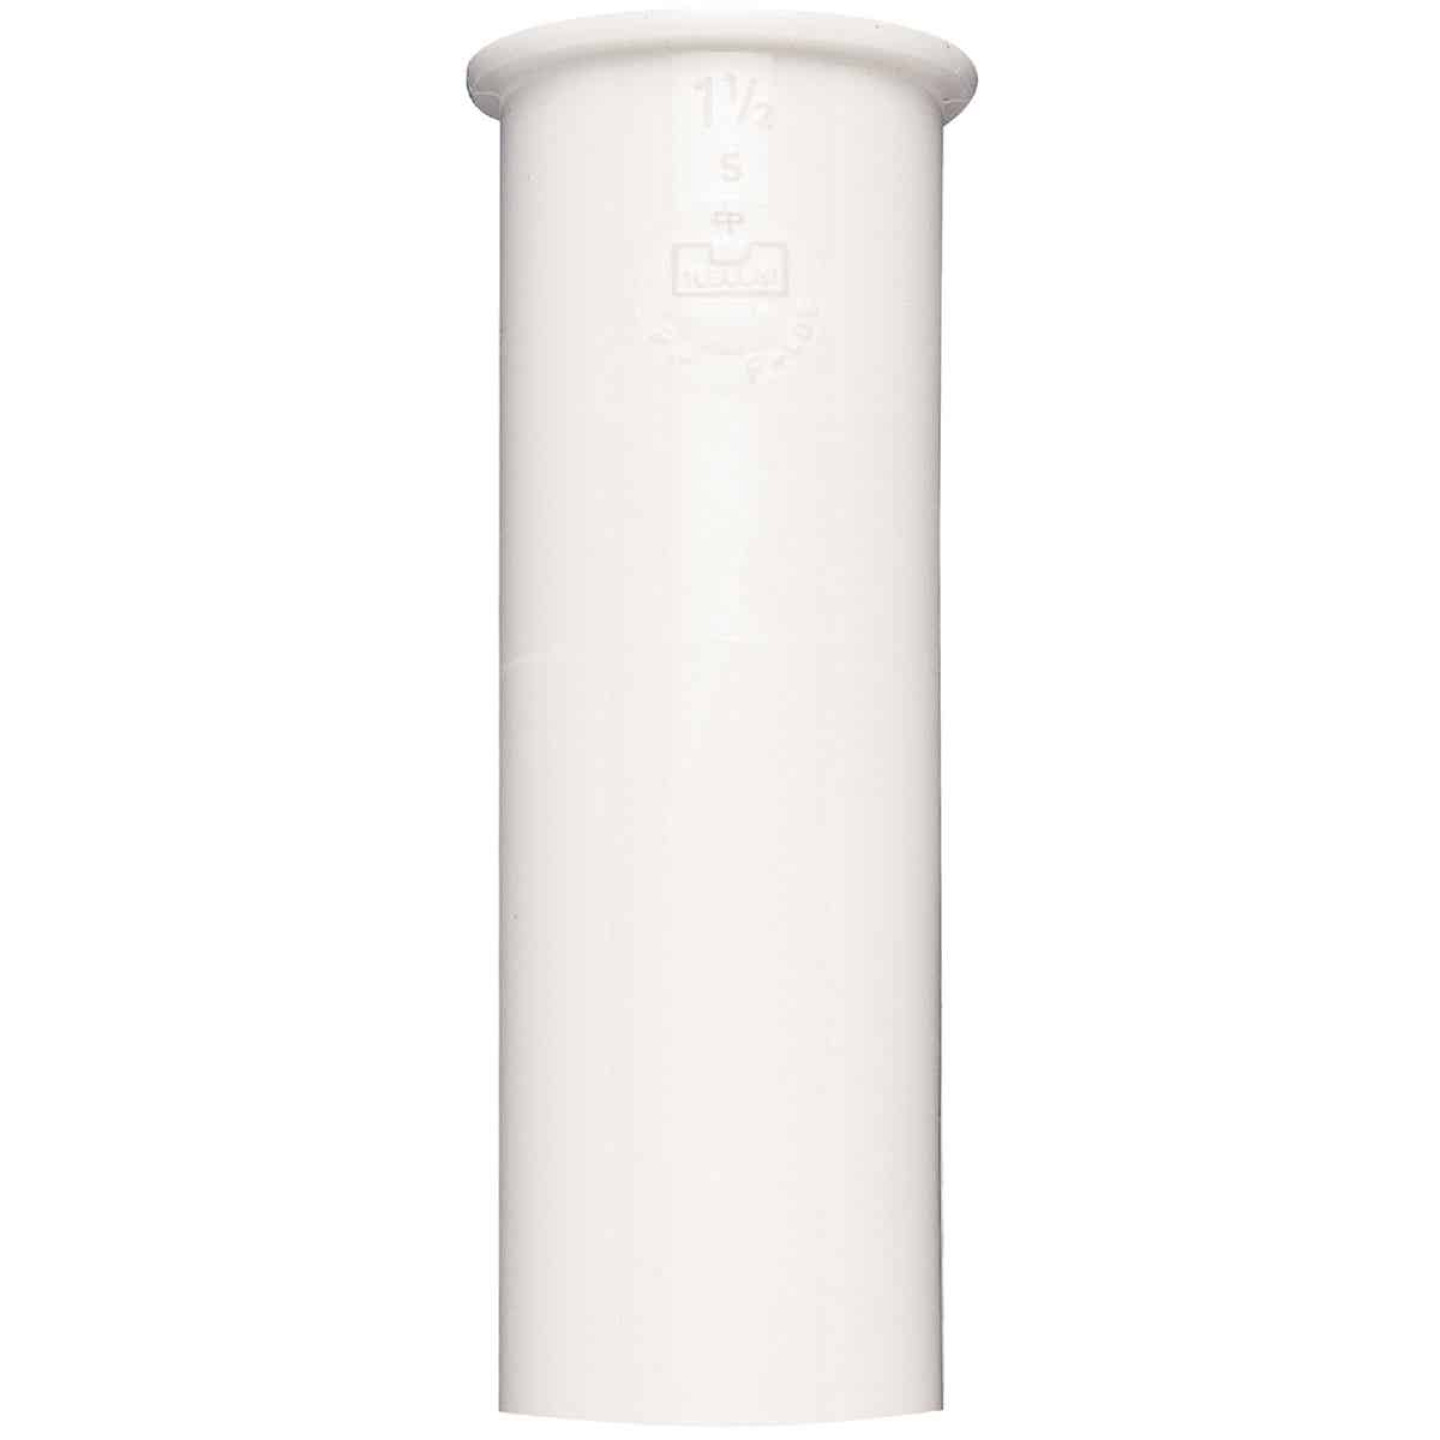 Do it 1-1/2 In. x 6 In. White Plastic Tailpiece Image 2